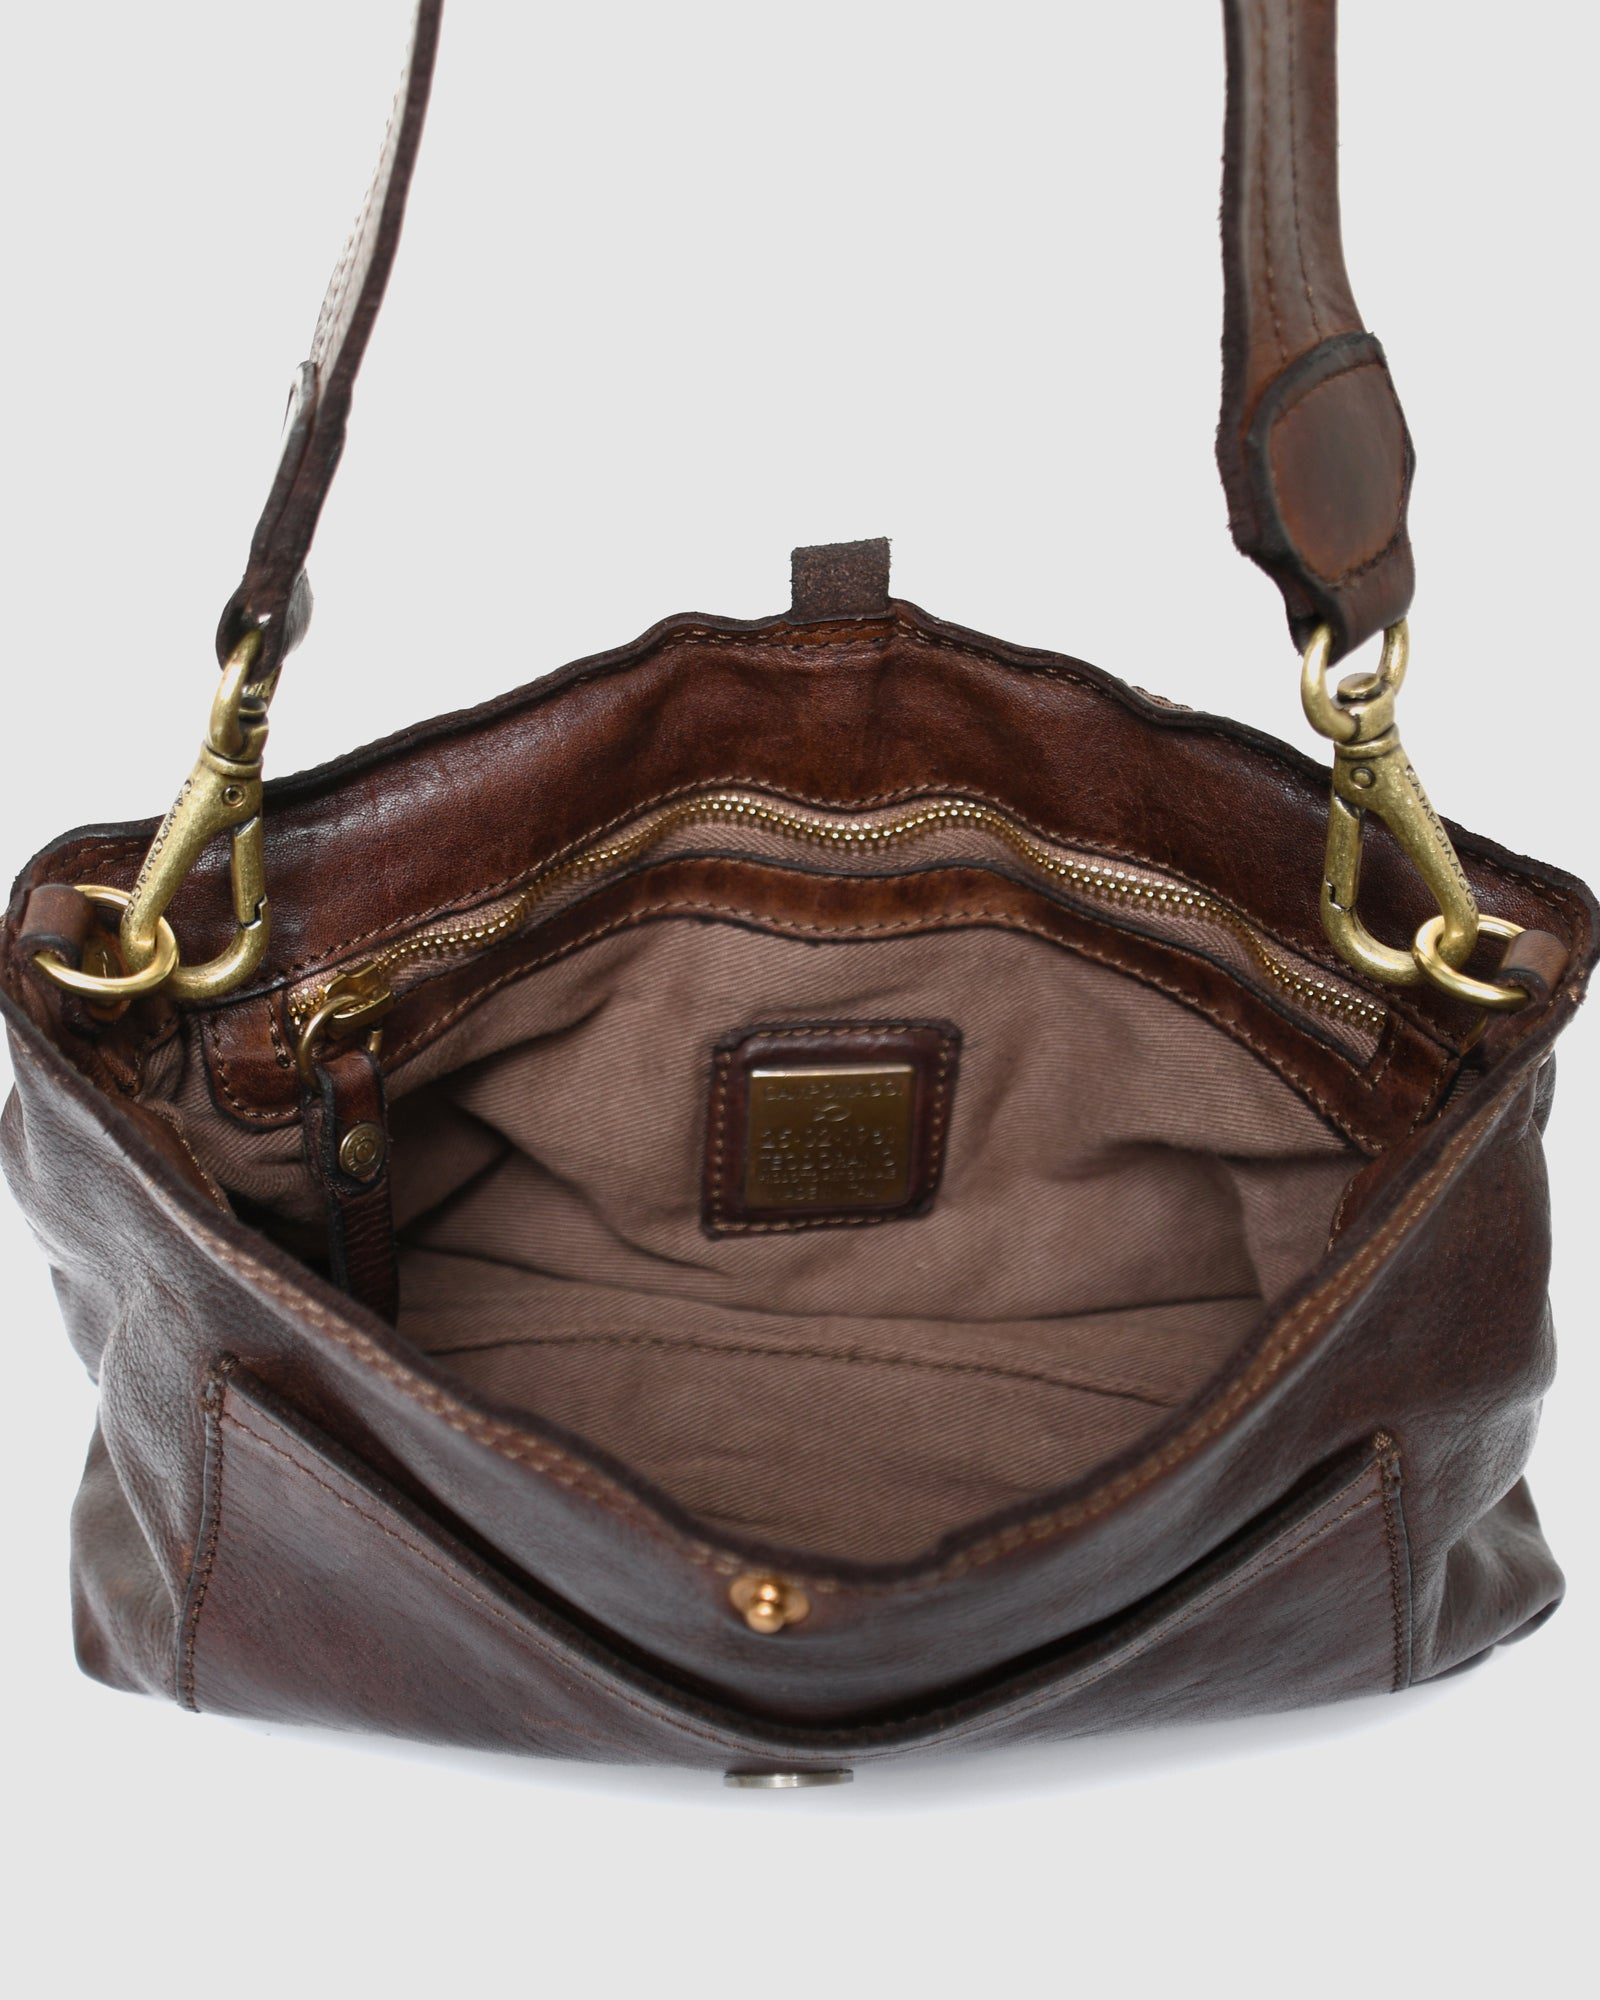 CAMPOMAGGI RAVENNA CROSS BODY BAG DARK BROWN LEATHER